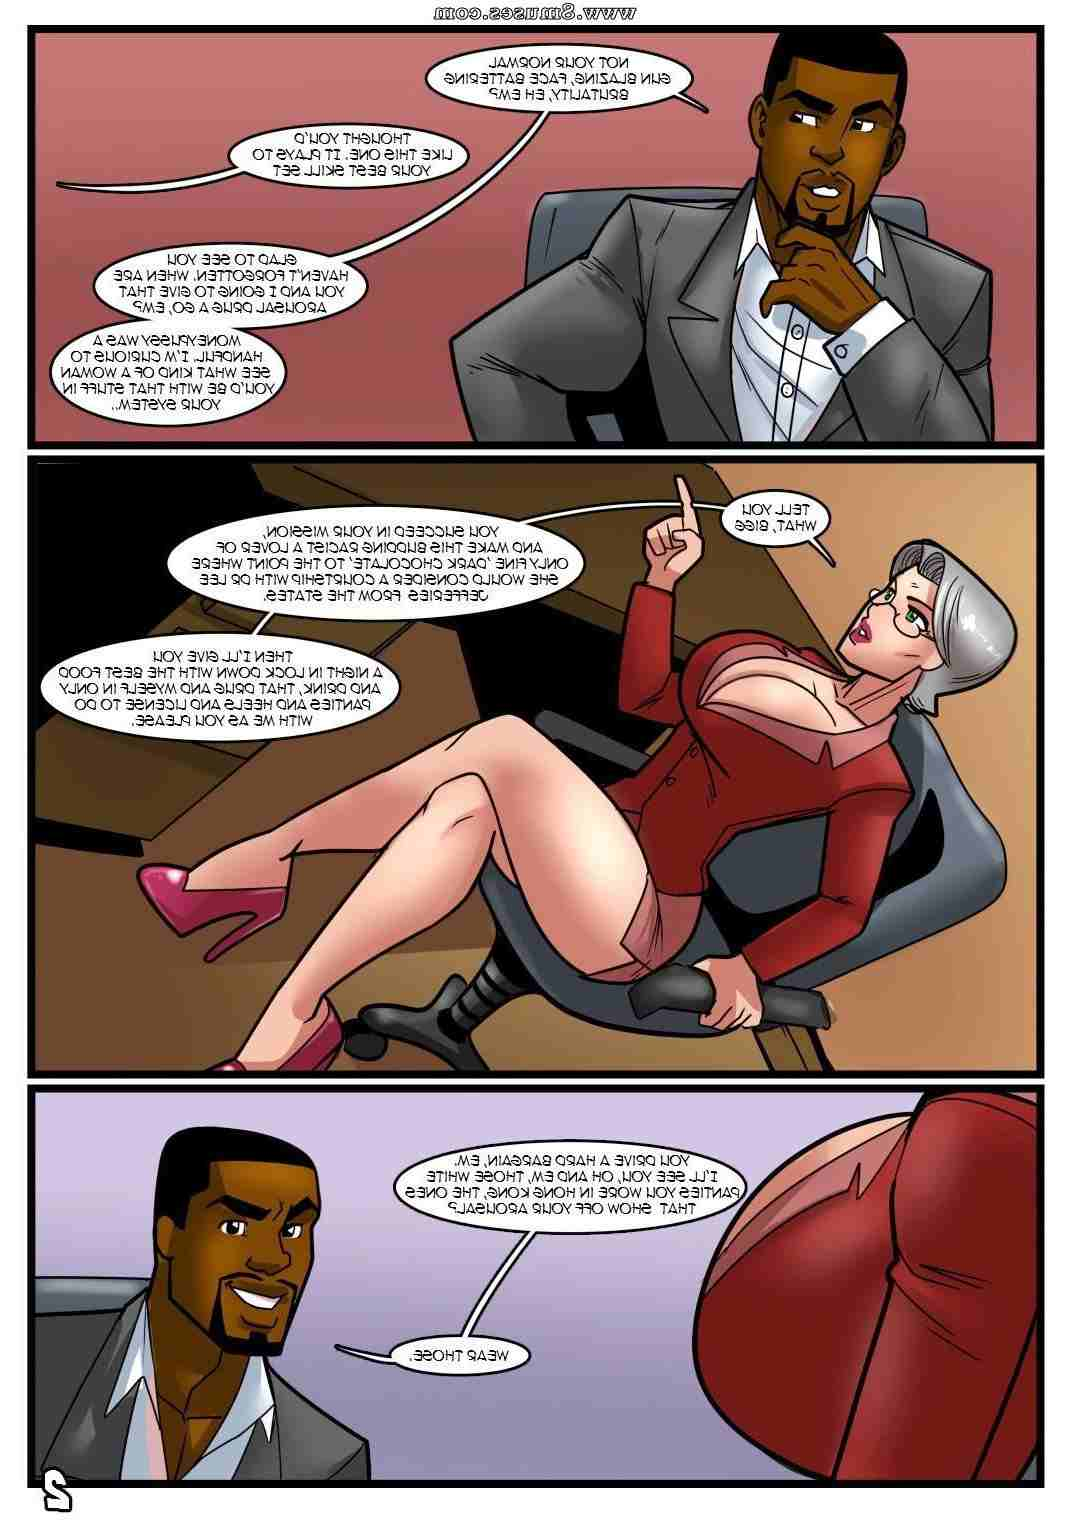 JohnPersons_com-Comics/Rabies/Agent-Briggs-New-Adventure-Deep-in-Virginal-Territory Agent_Briggs_New_Adventure_-_Deep_in_Virginal_Territory__8muses_-_Sex_and_Porn_Comics_2.jpg